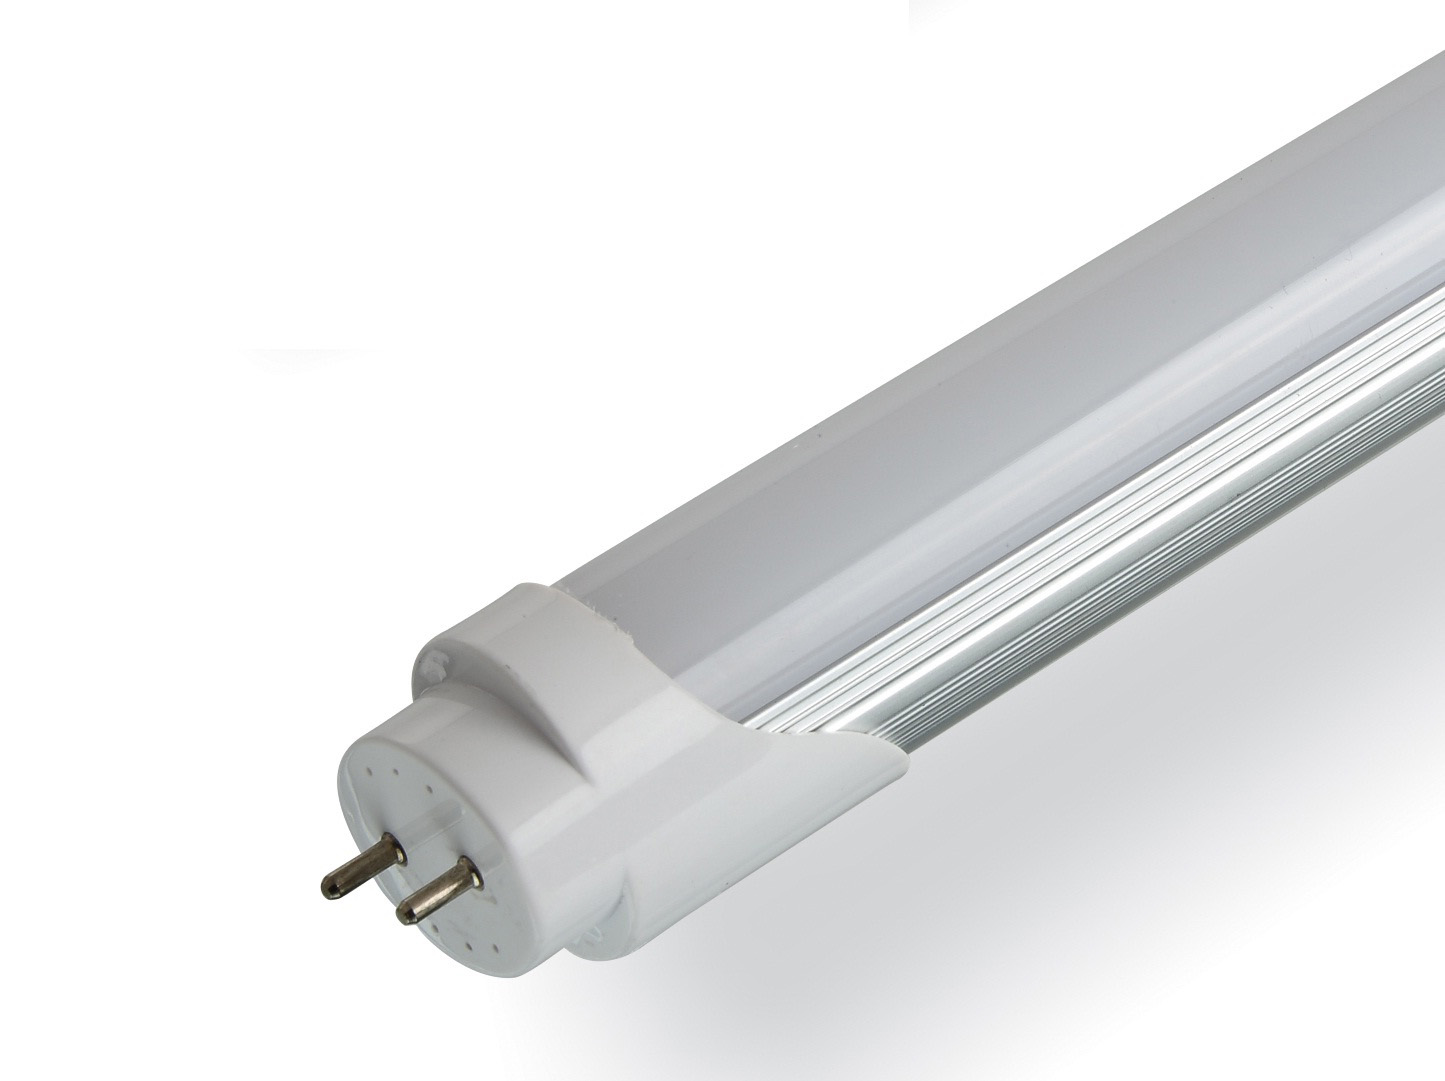 3 Foot Led T8 Fluoro Replacement Tube Light 900mm Leds